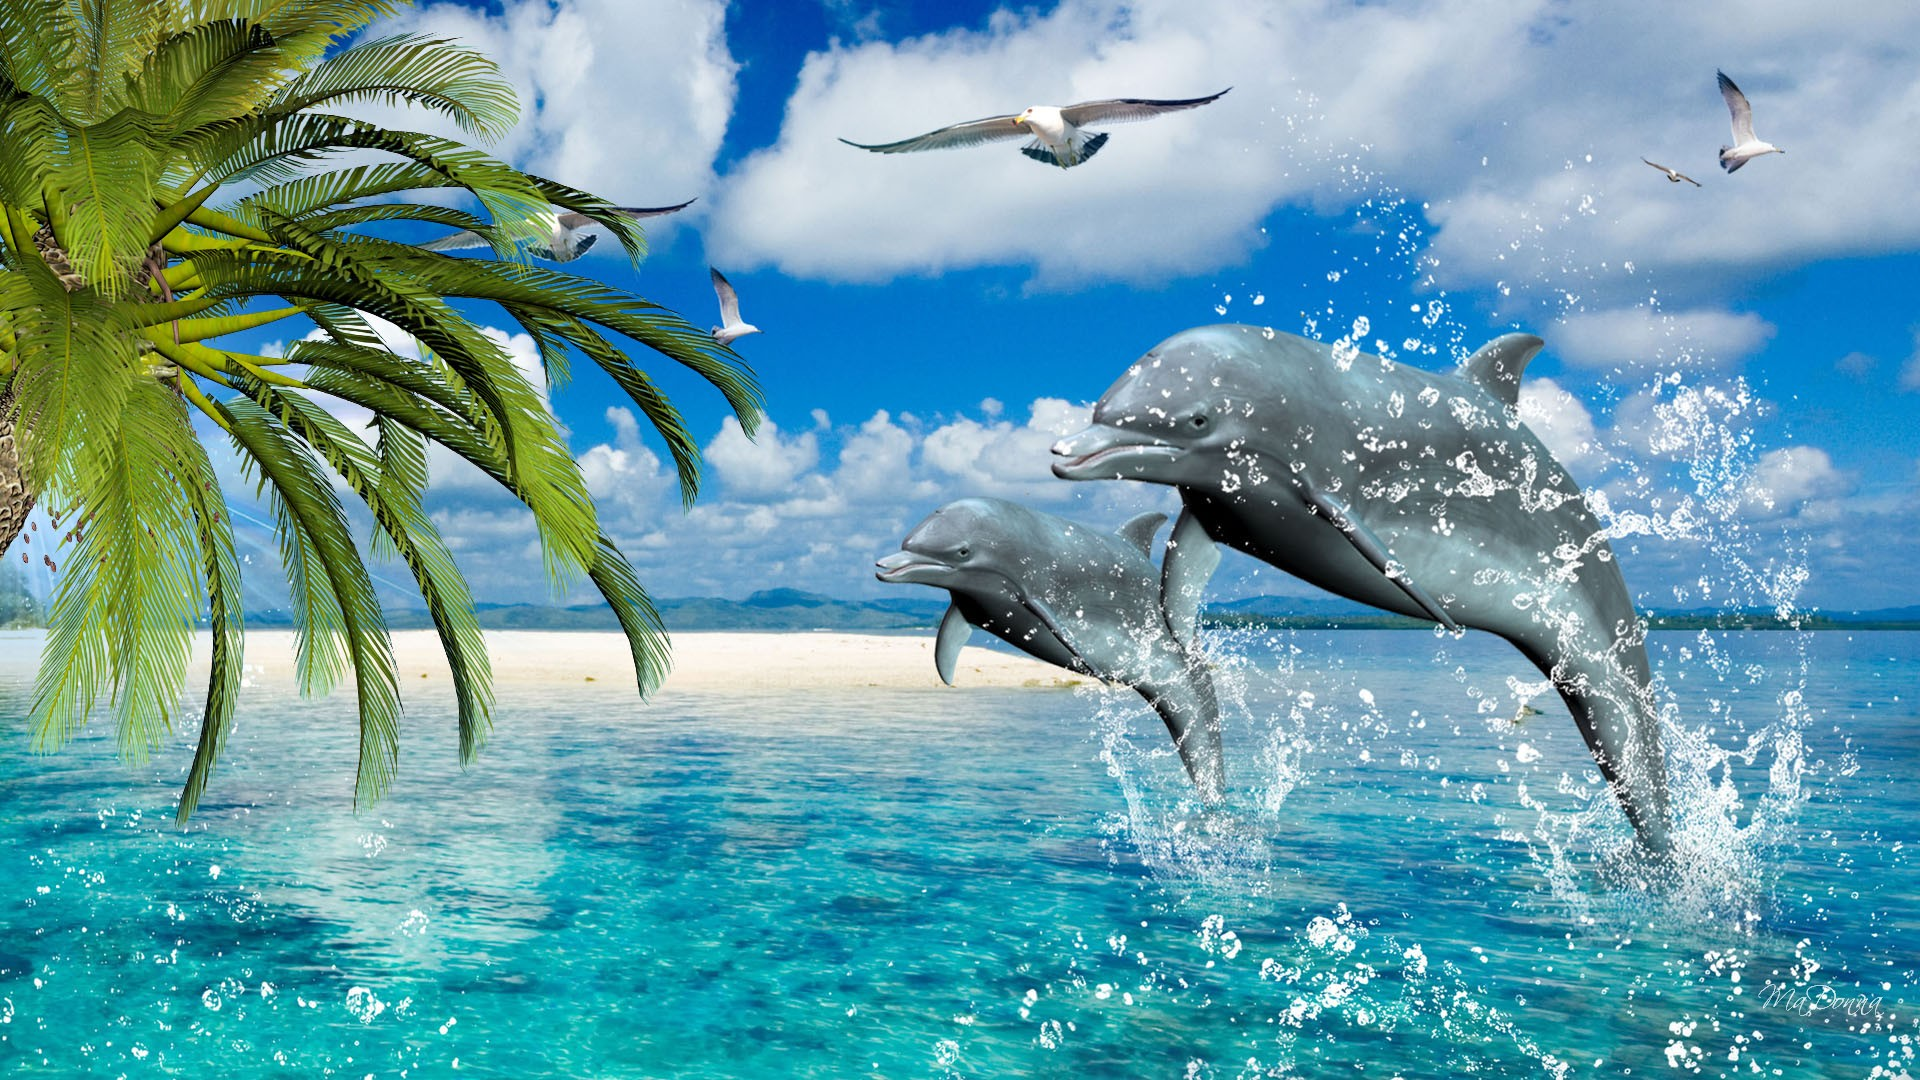 Dolphin Desktop Wallpaper Dolphins Pictures Cool Wallpapers 1920x1080